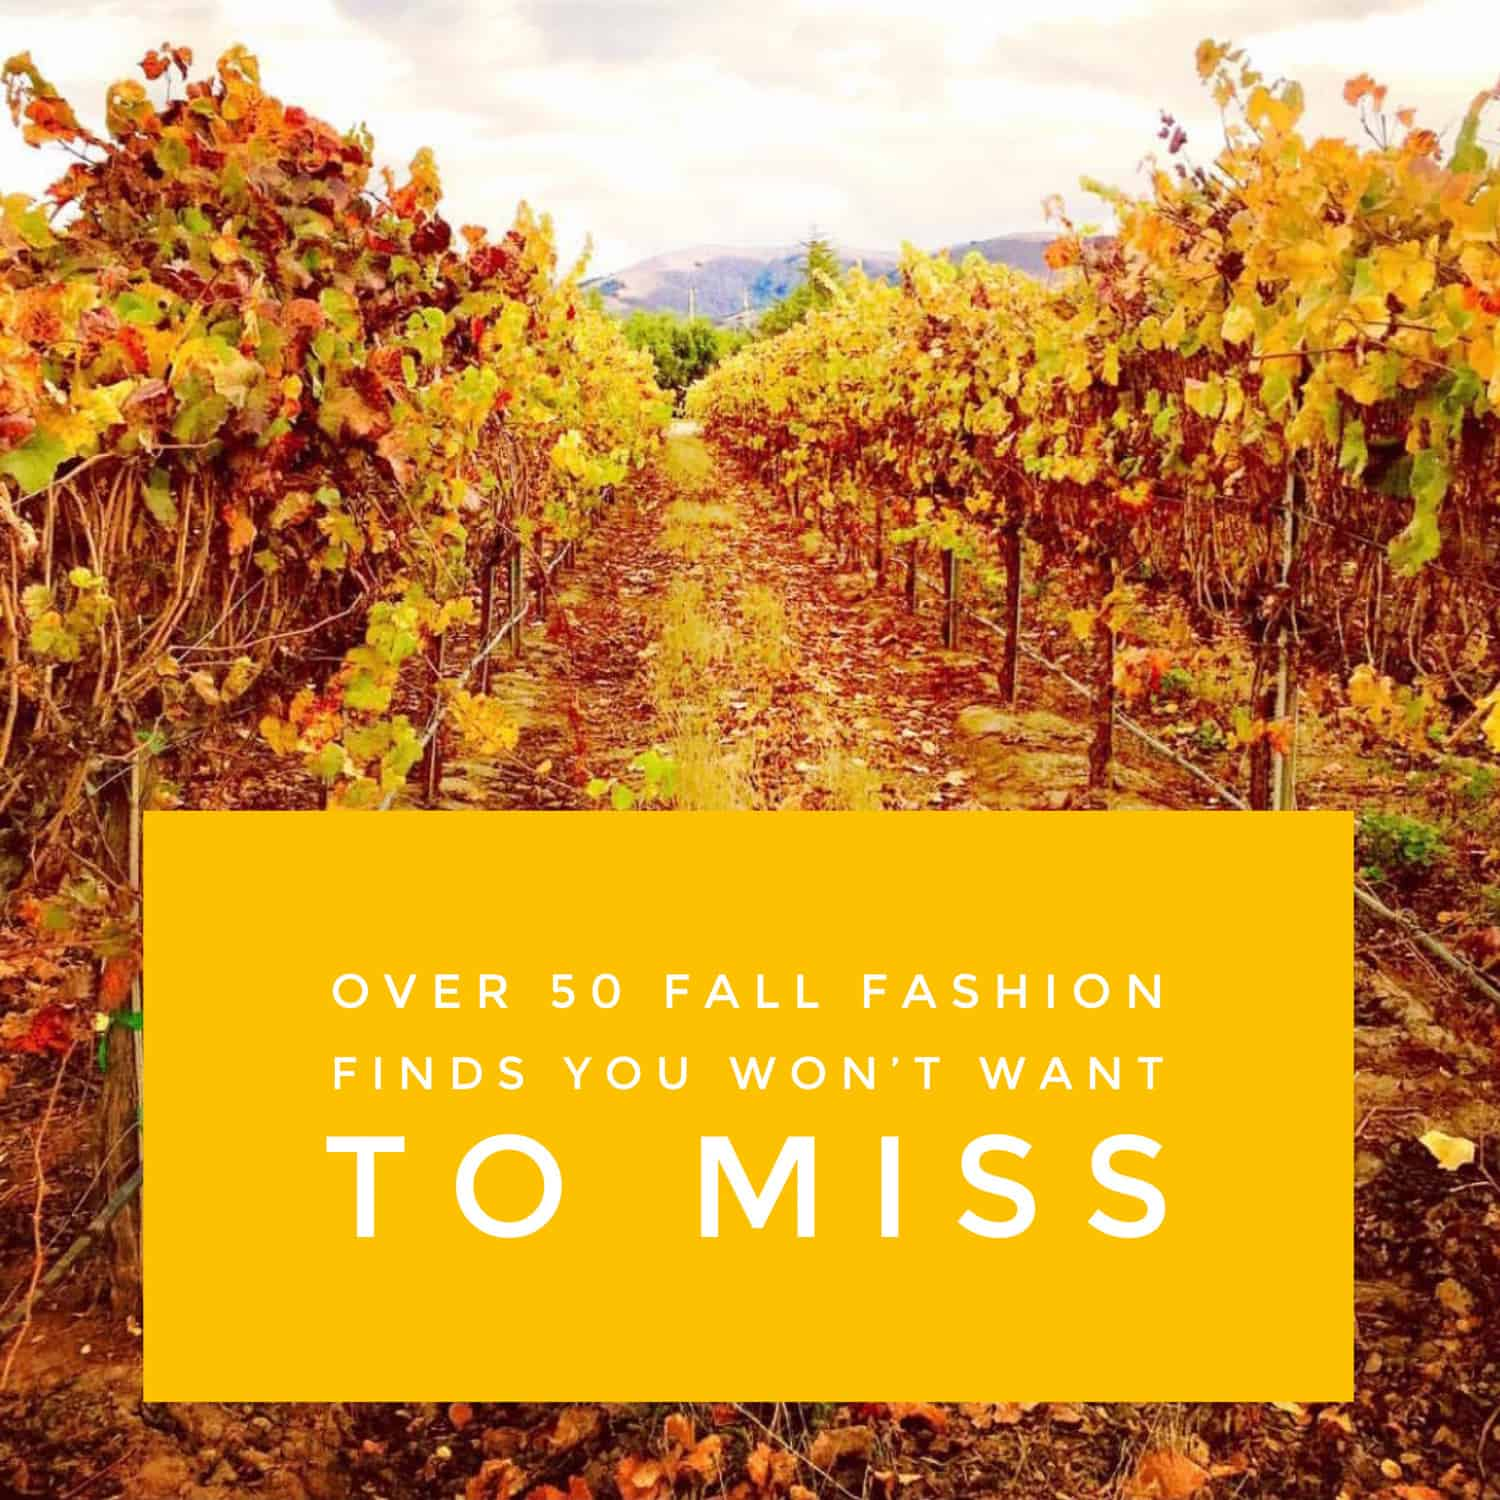 over 50 fall fashion finds you wont want to miss